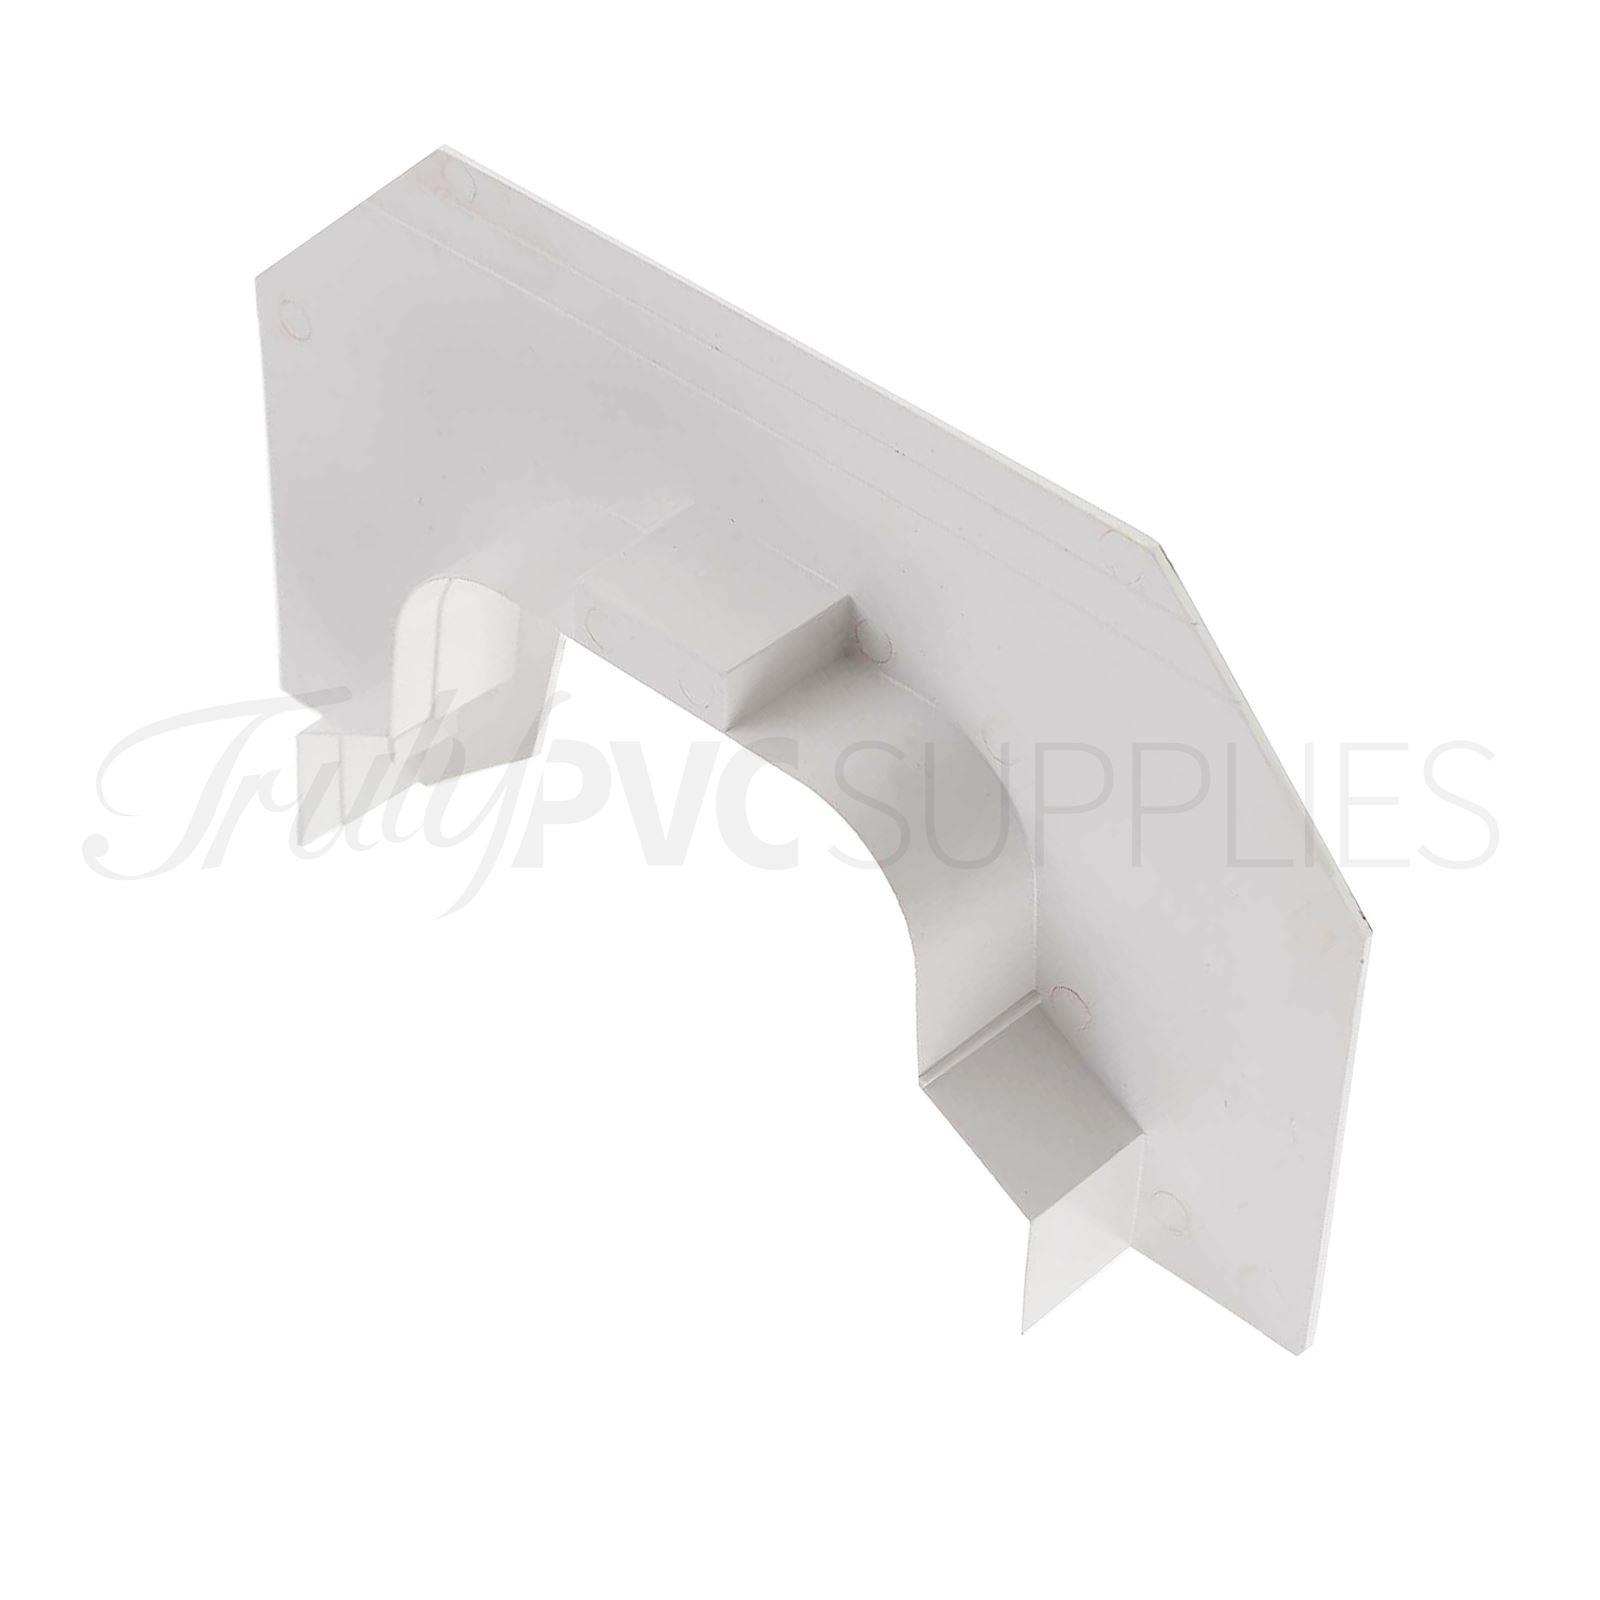 Ultraframe Kft001 Classic Ridge Flashing Trim Truly Pvc